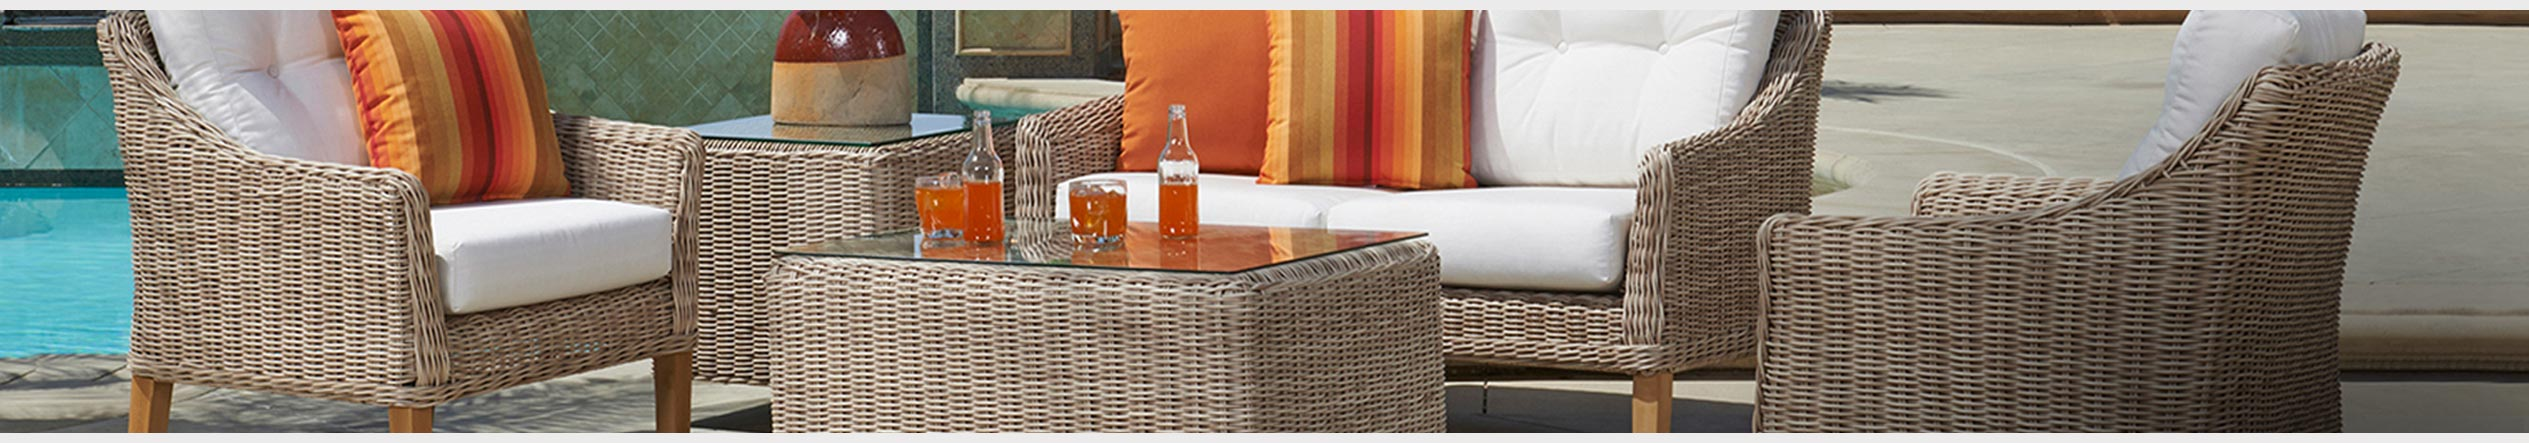 Outdoor Chairs for your patio, deck, porch or backyard